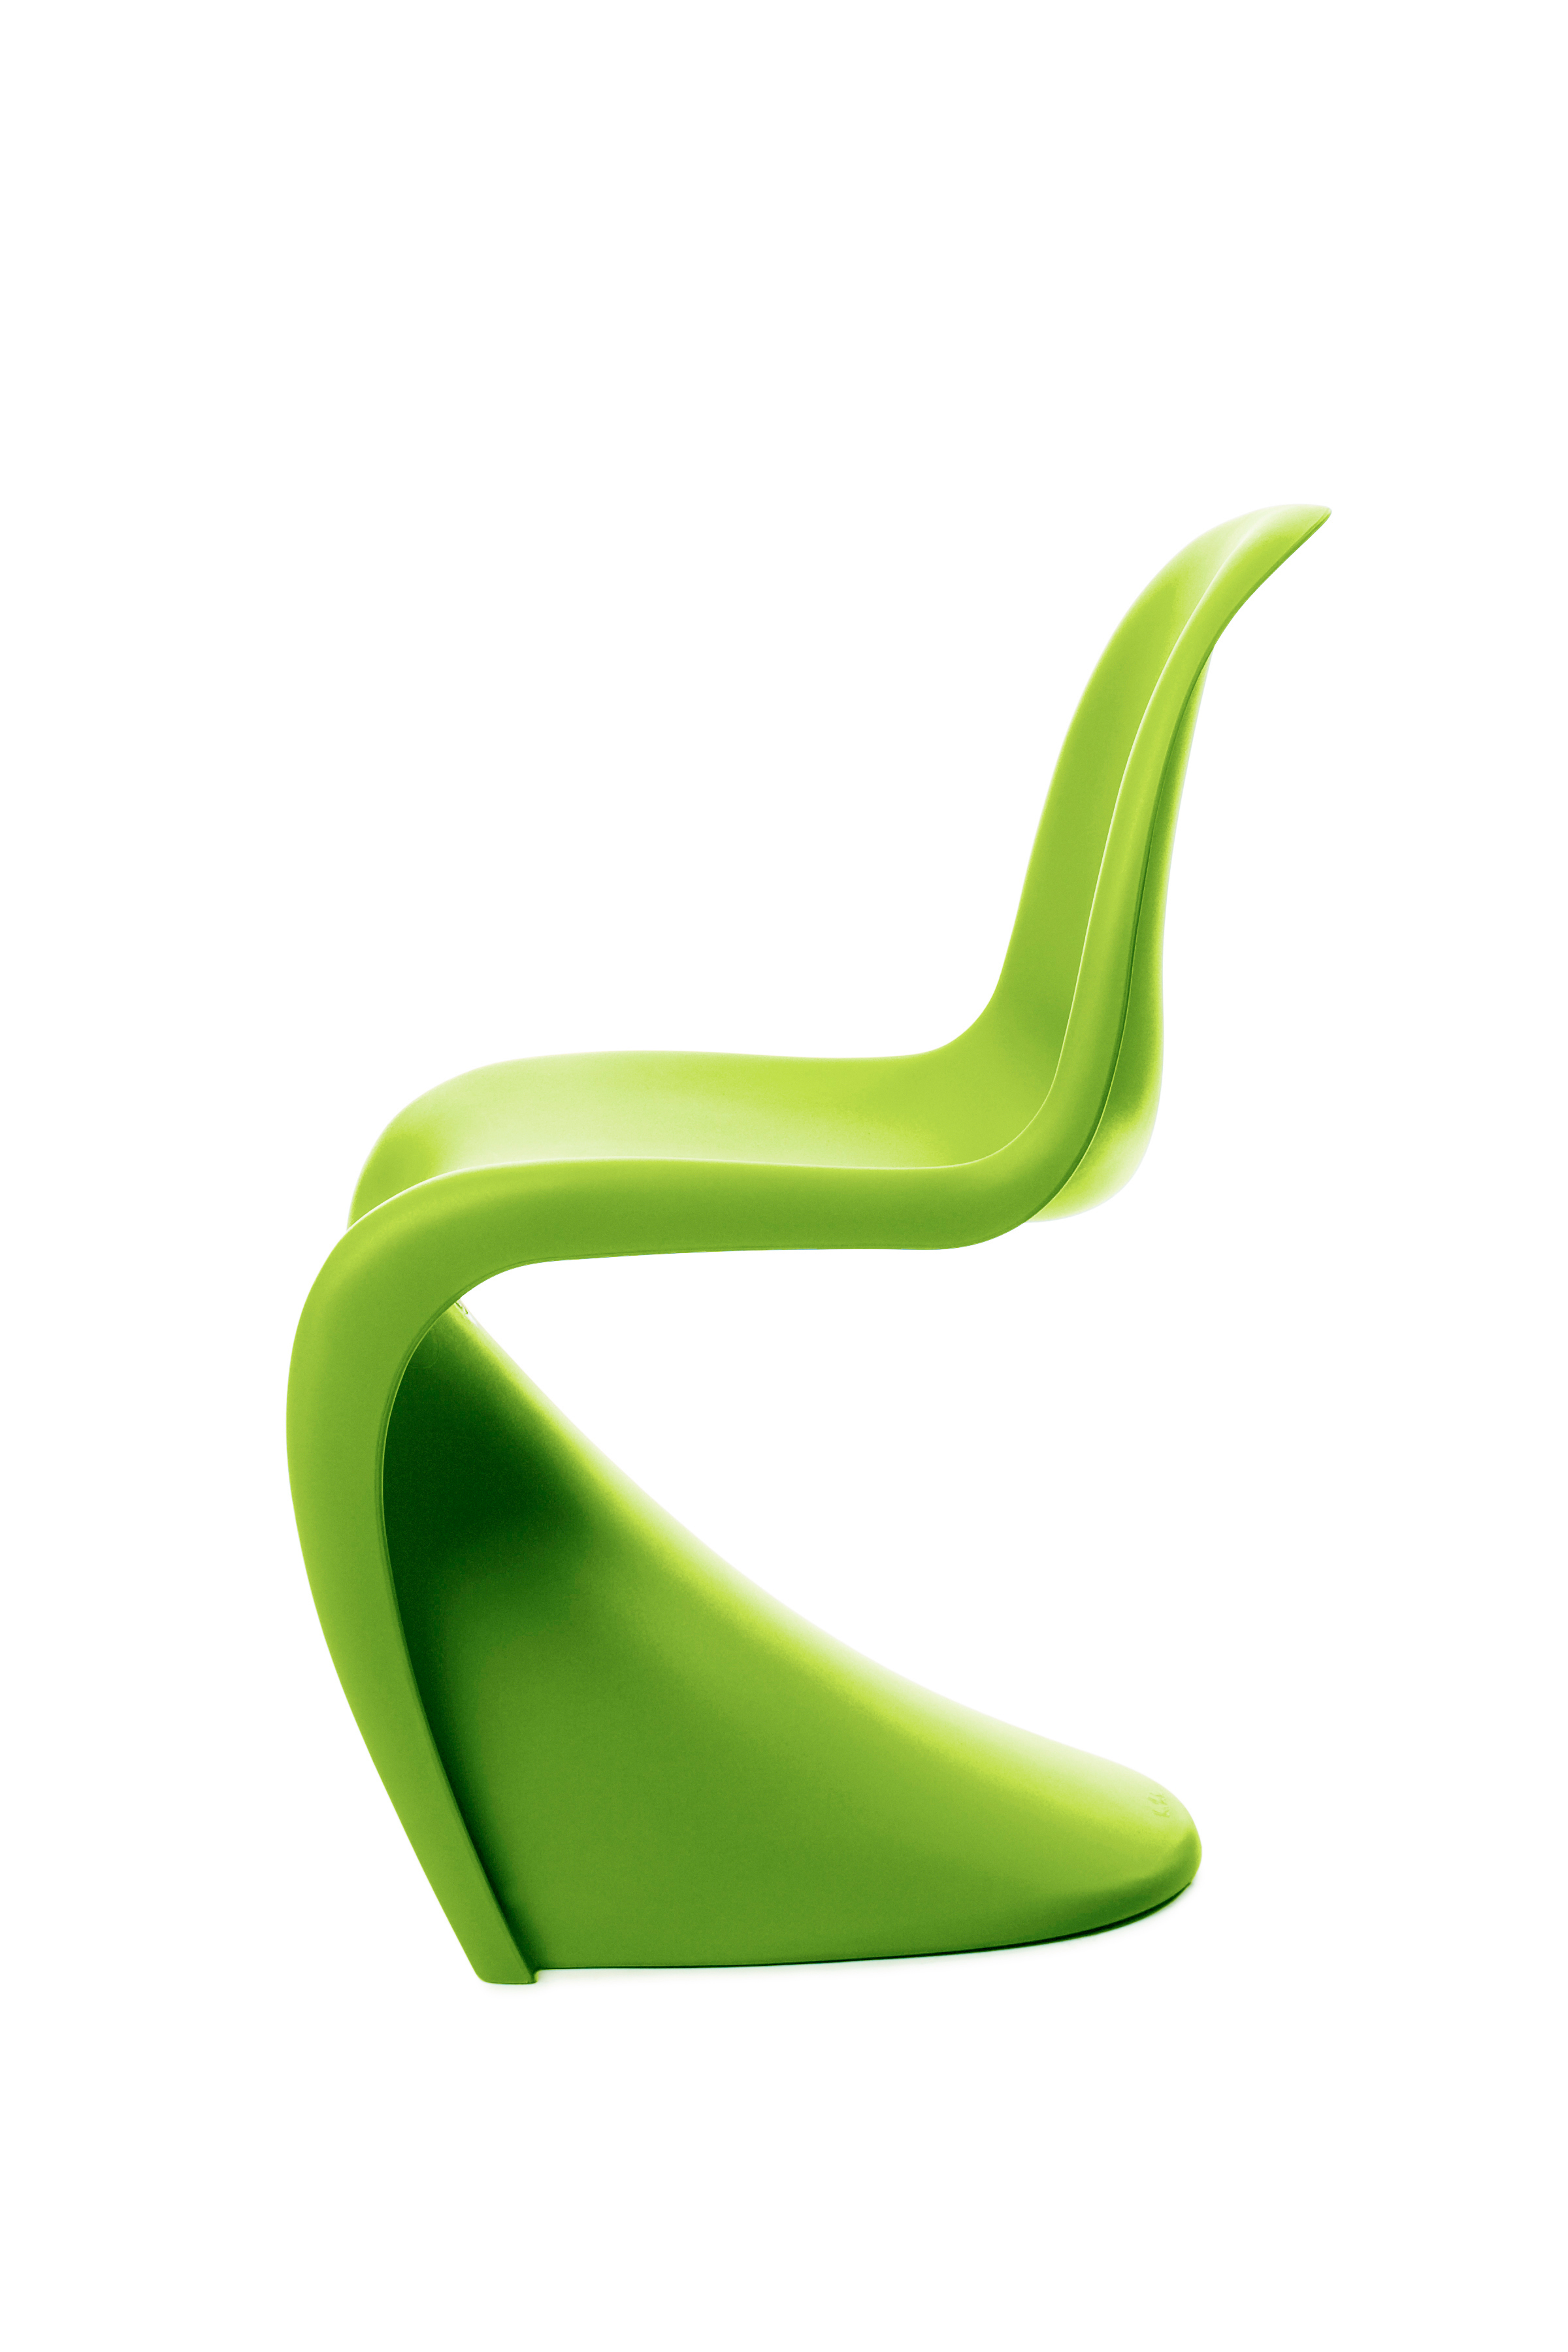 Summertime in dark lime Vitra Panton Chair Summer 2011 Edition